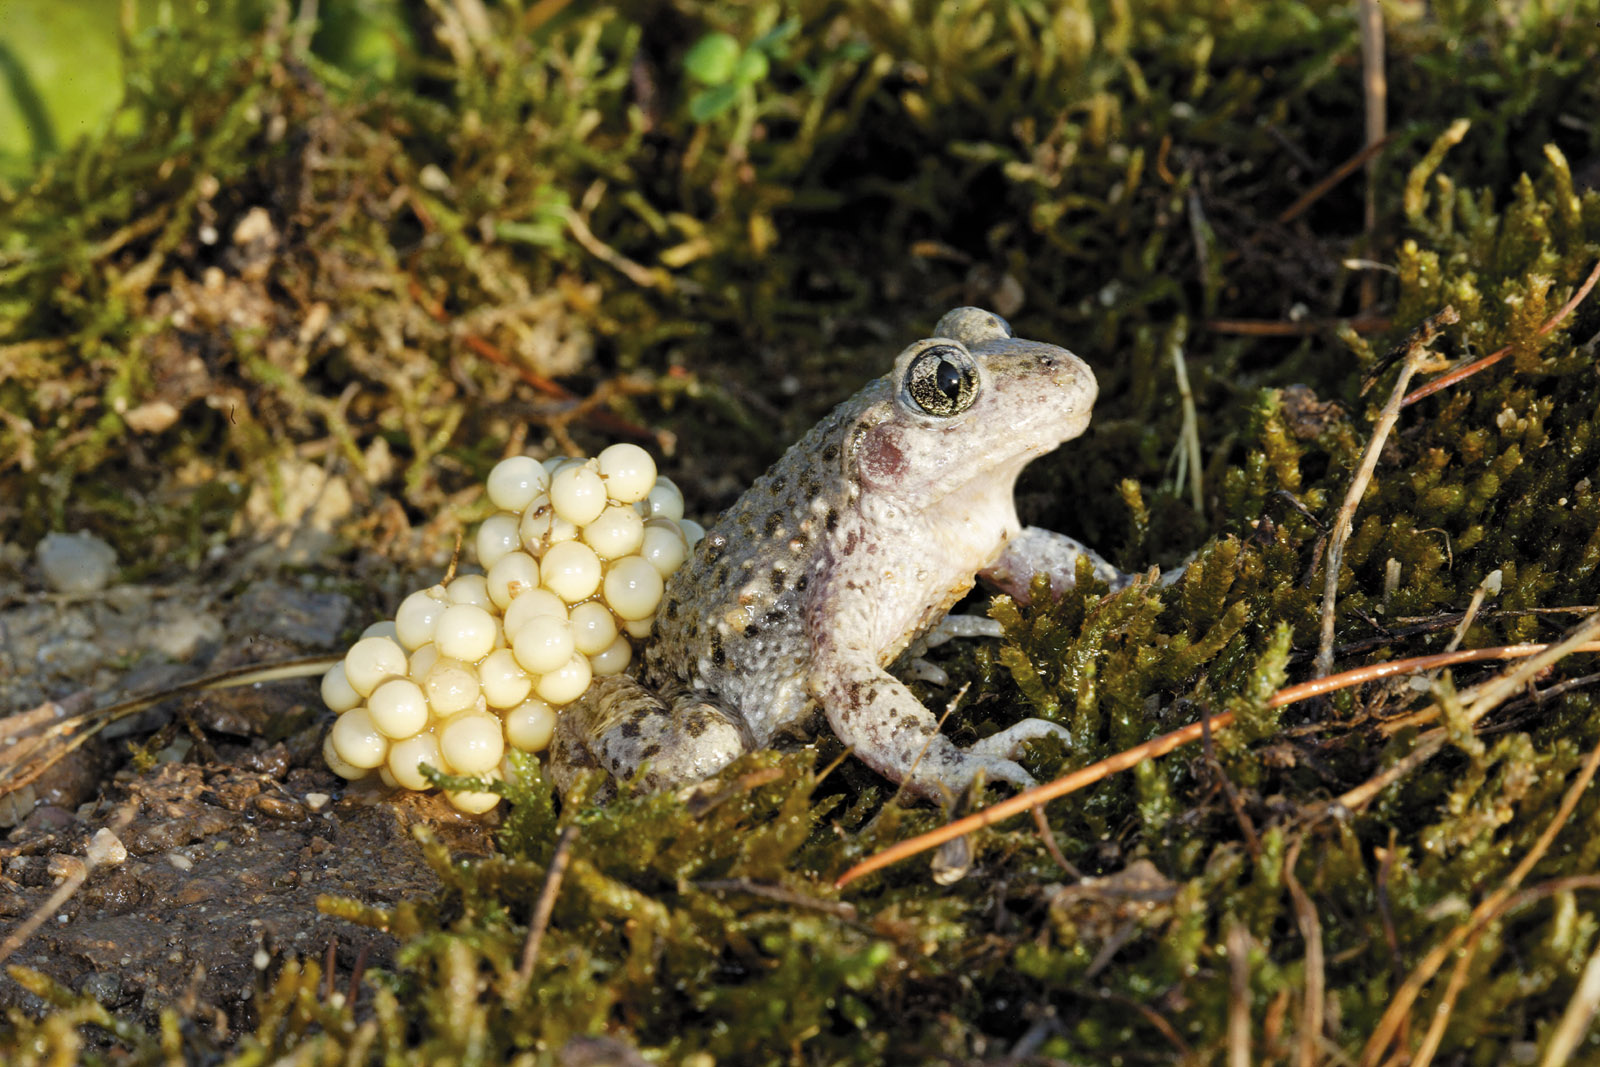 Toad carrying eggs on its back